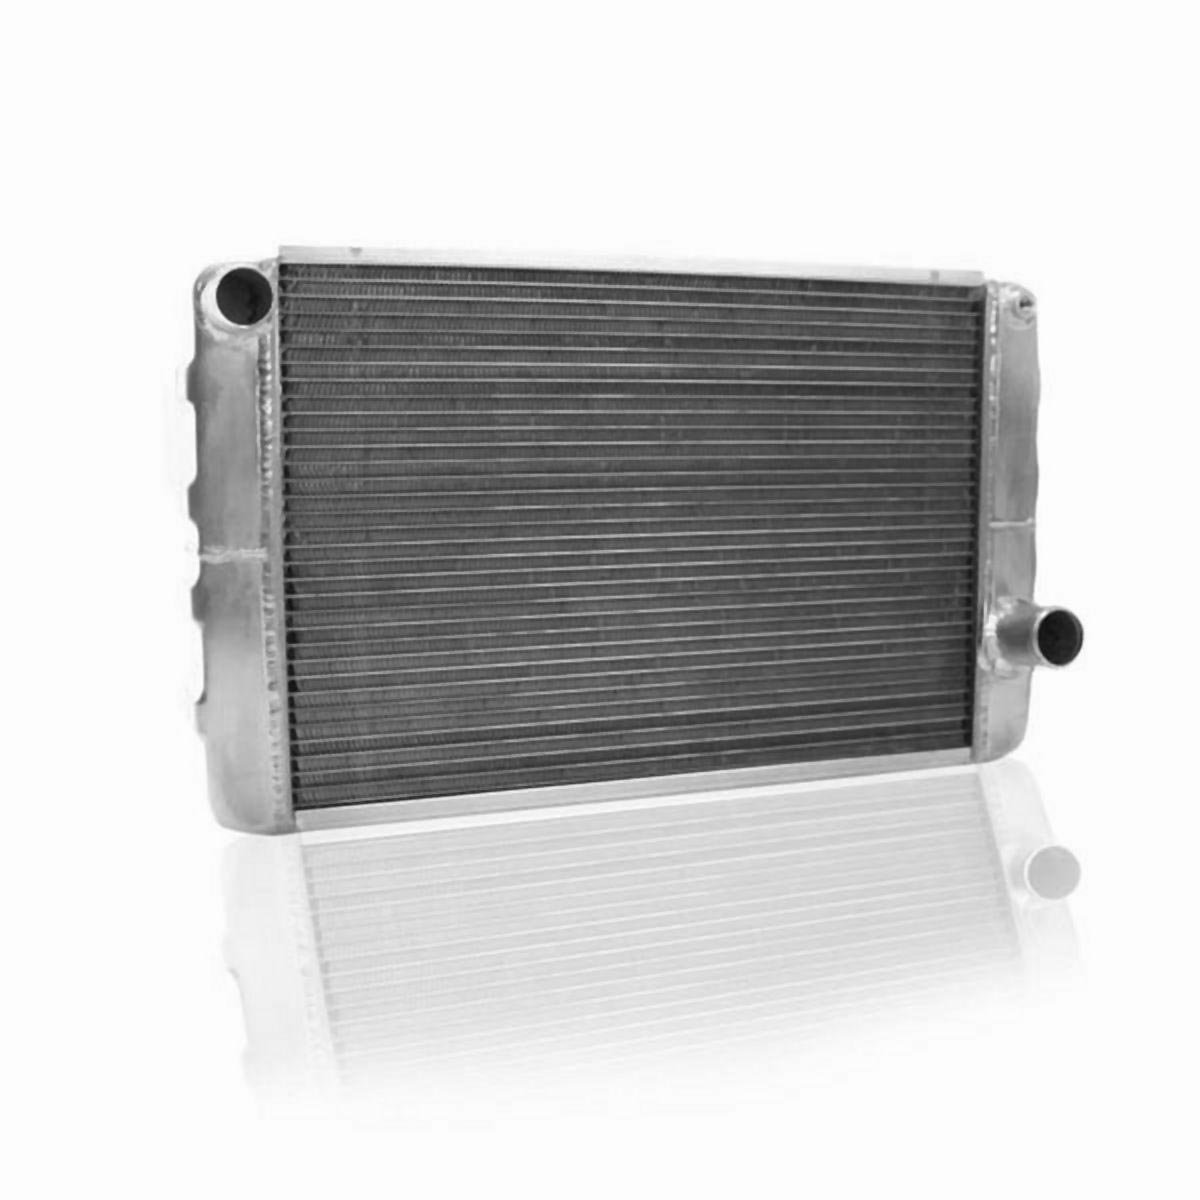 Griffin Radiator 1-25221-X ClassicCool 26 x 16 2-Row Aluminum Radiator with 1 Tube